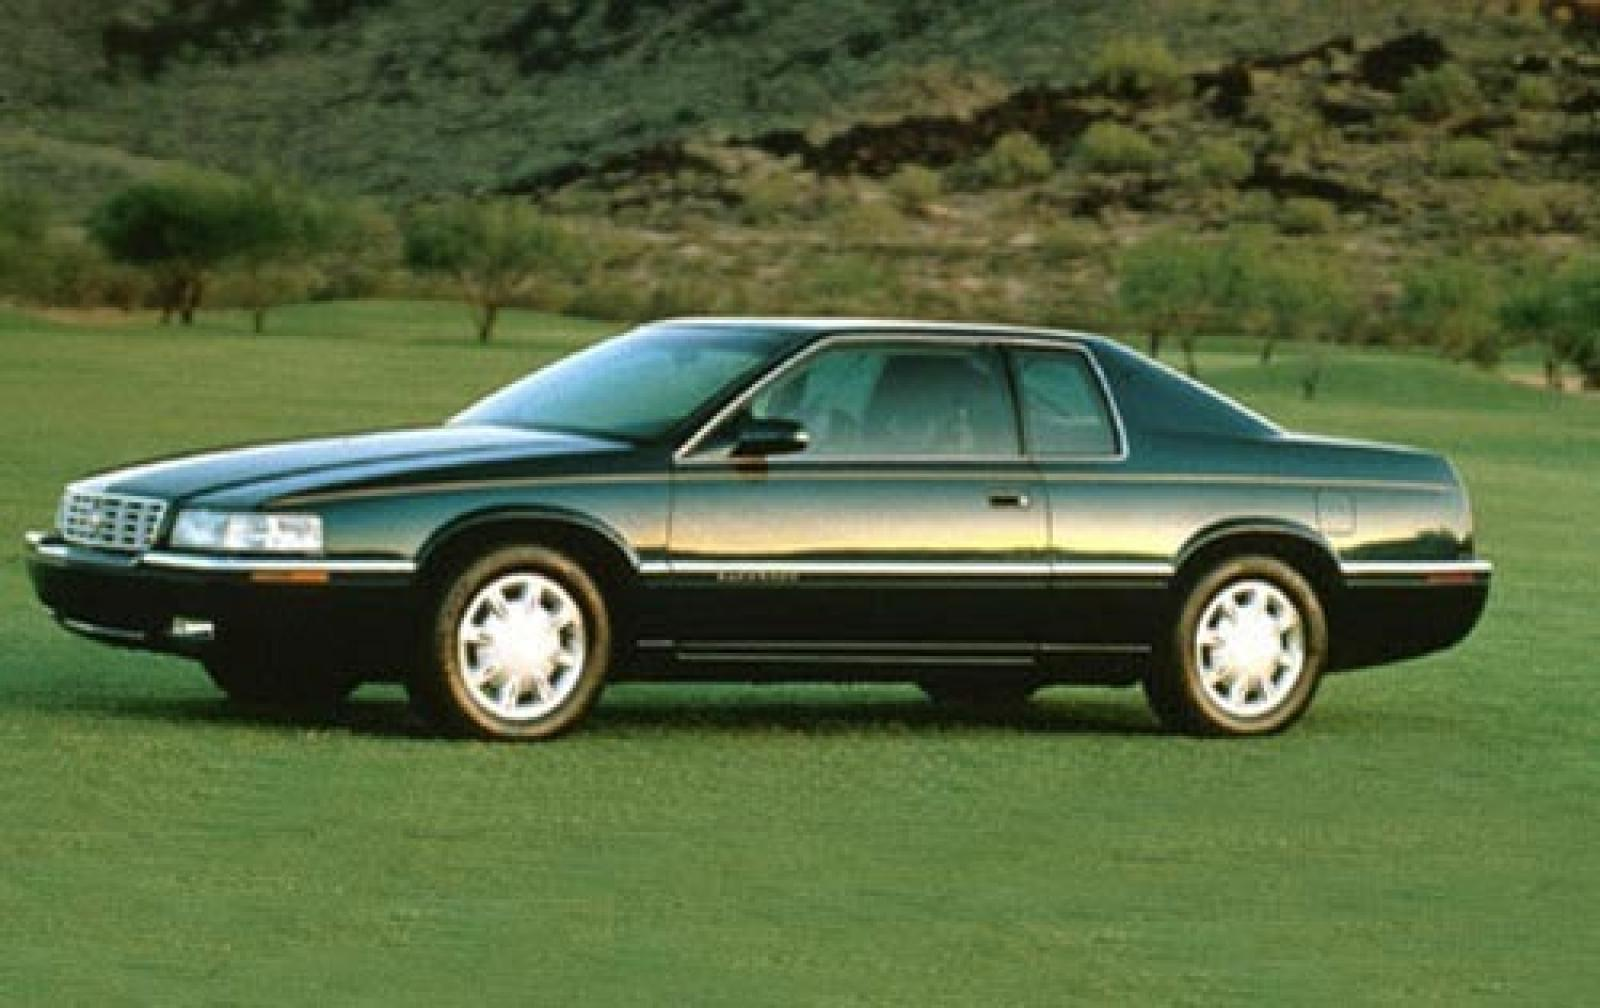 1995 Cadillac Eldorado Coupe 2-door